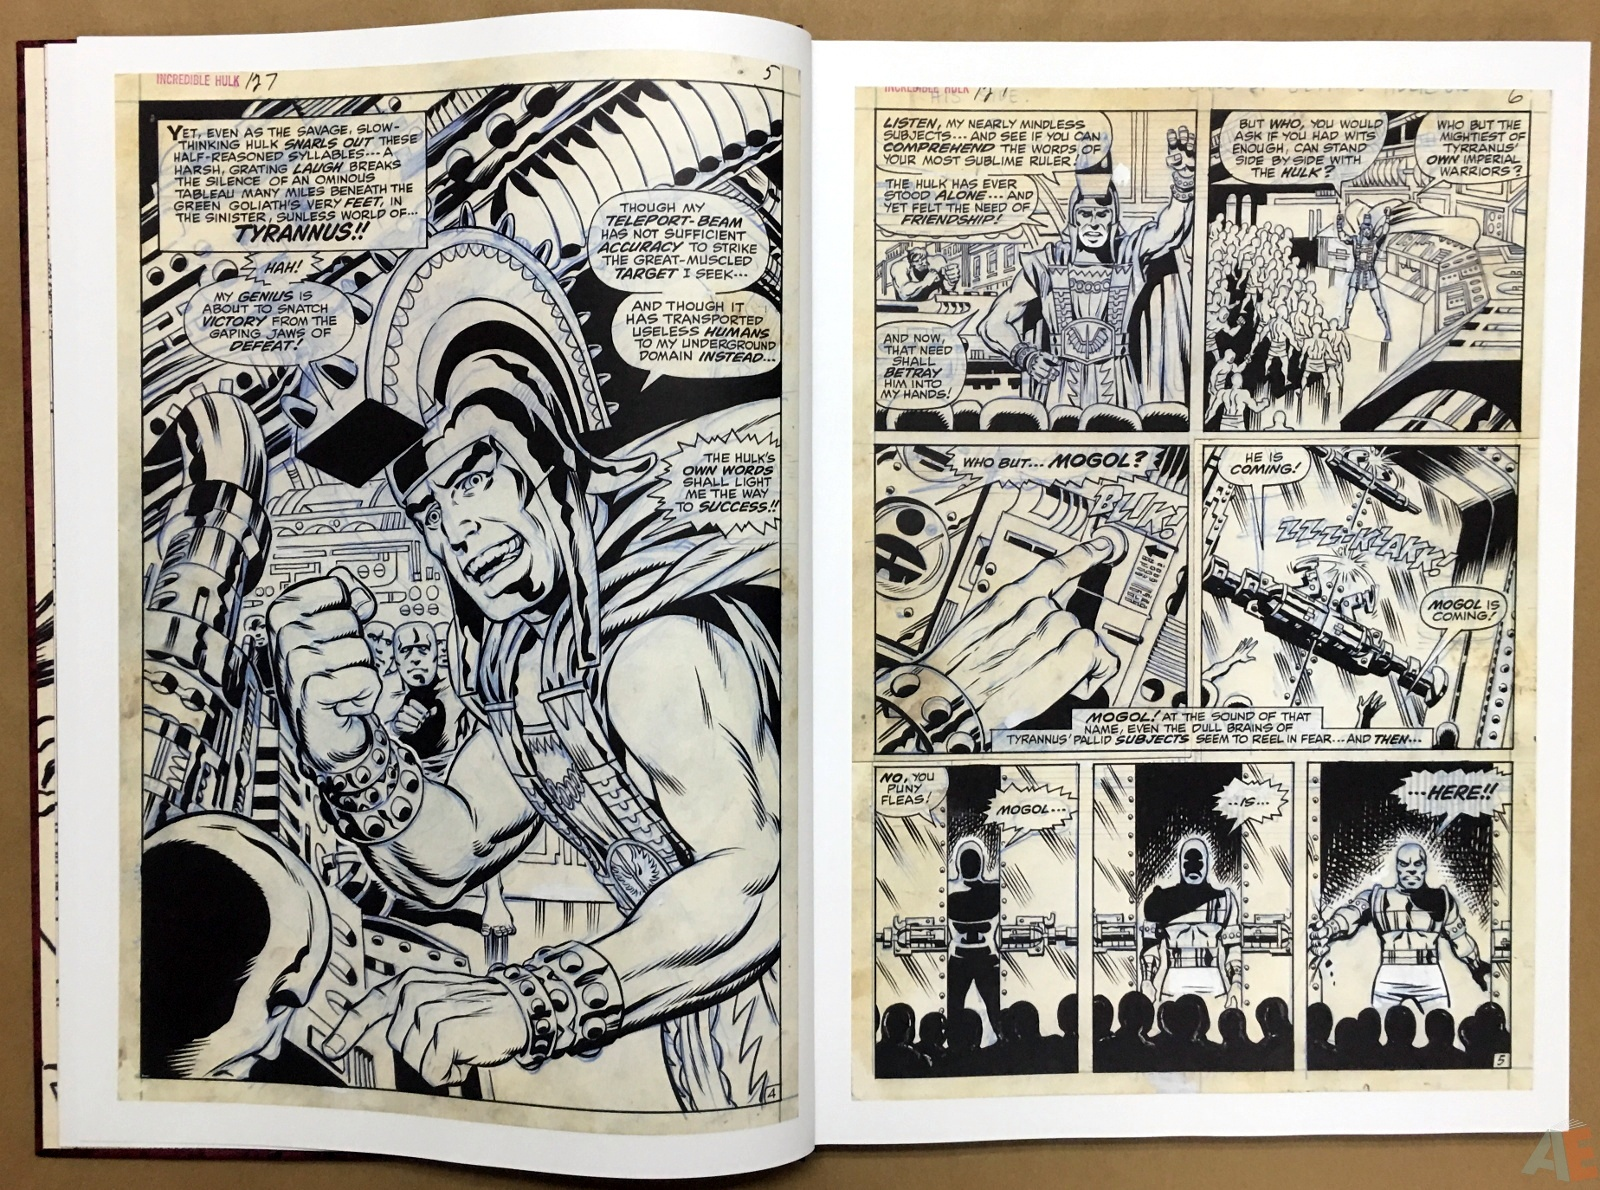 Herb Trimpe's The Incredible Hulk Artist's Edition 8